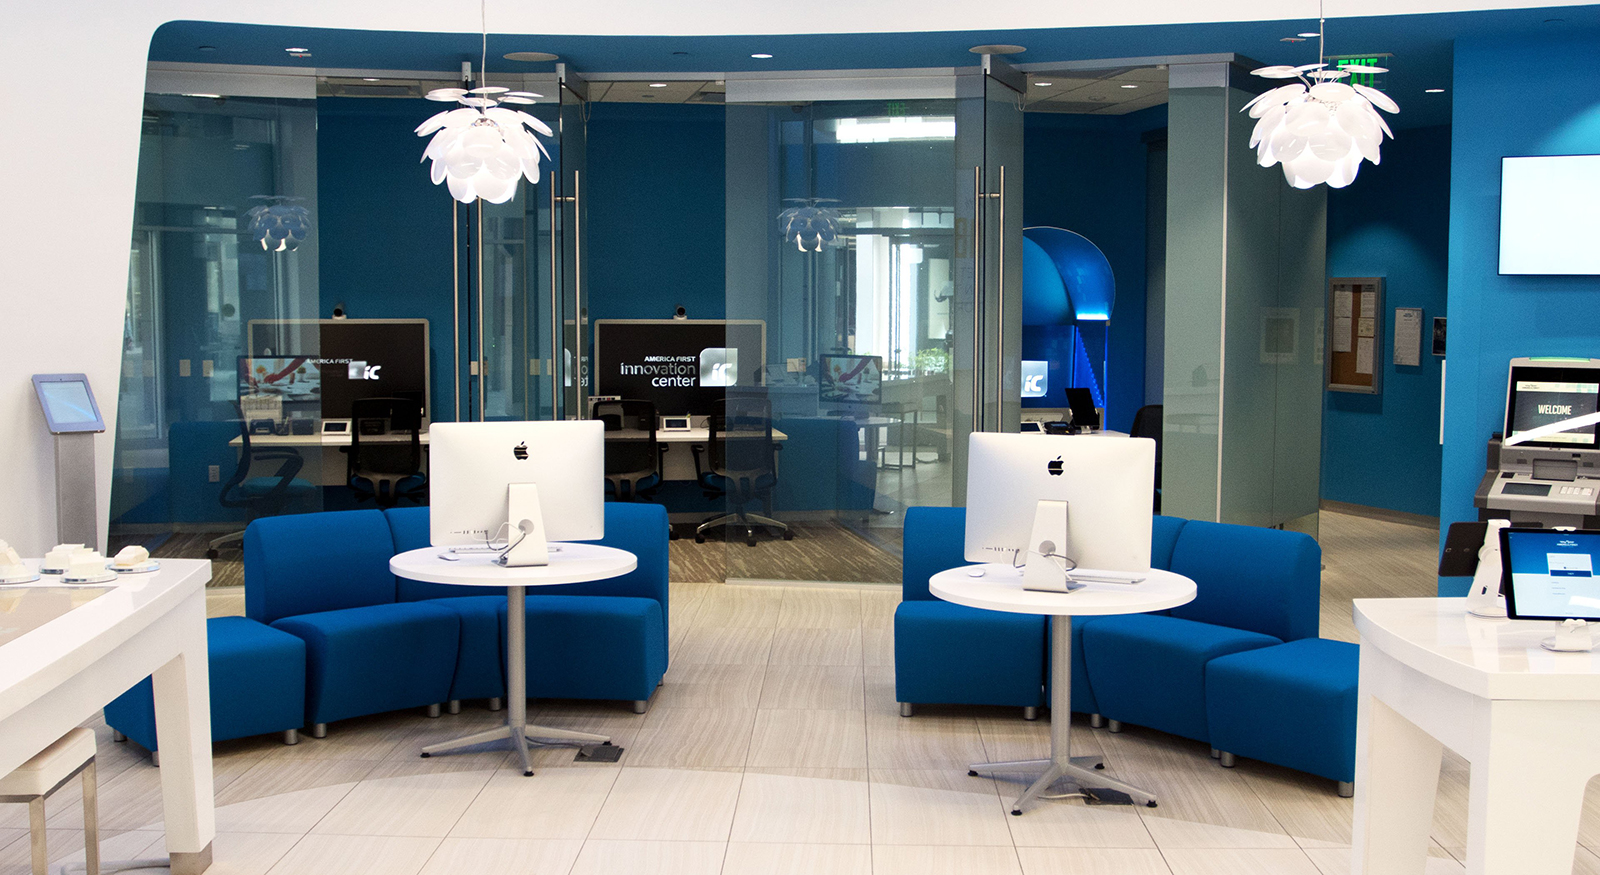 Consumers Test-Drive Ideas Inside Credit Union\'s Innovation Center